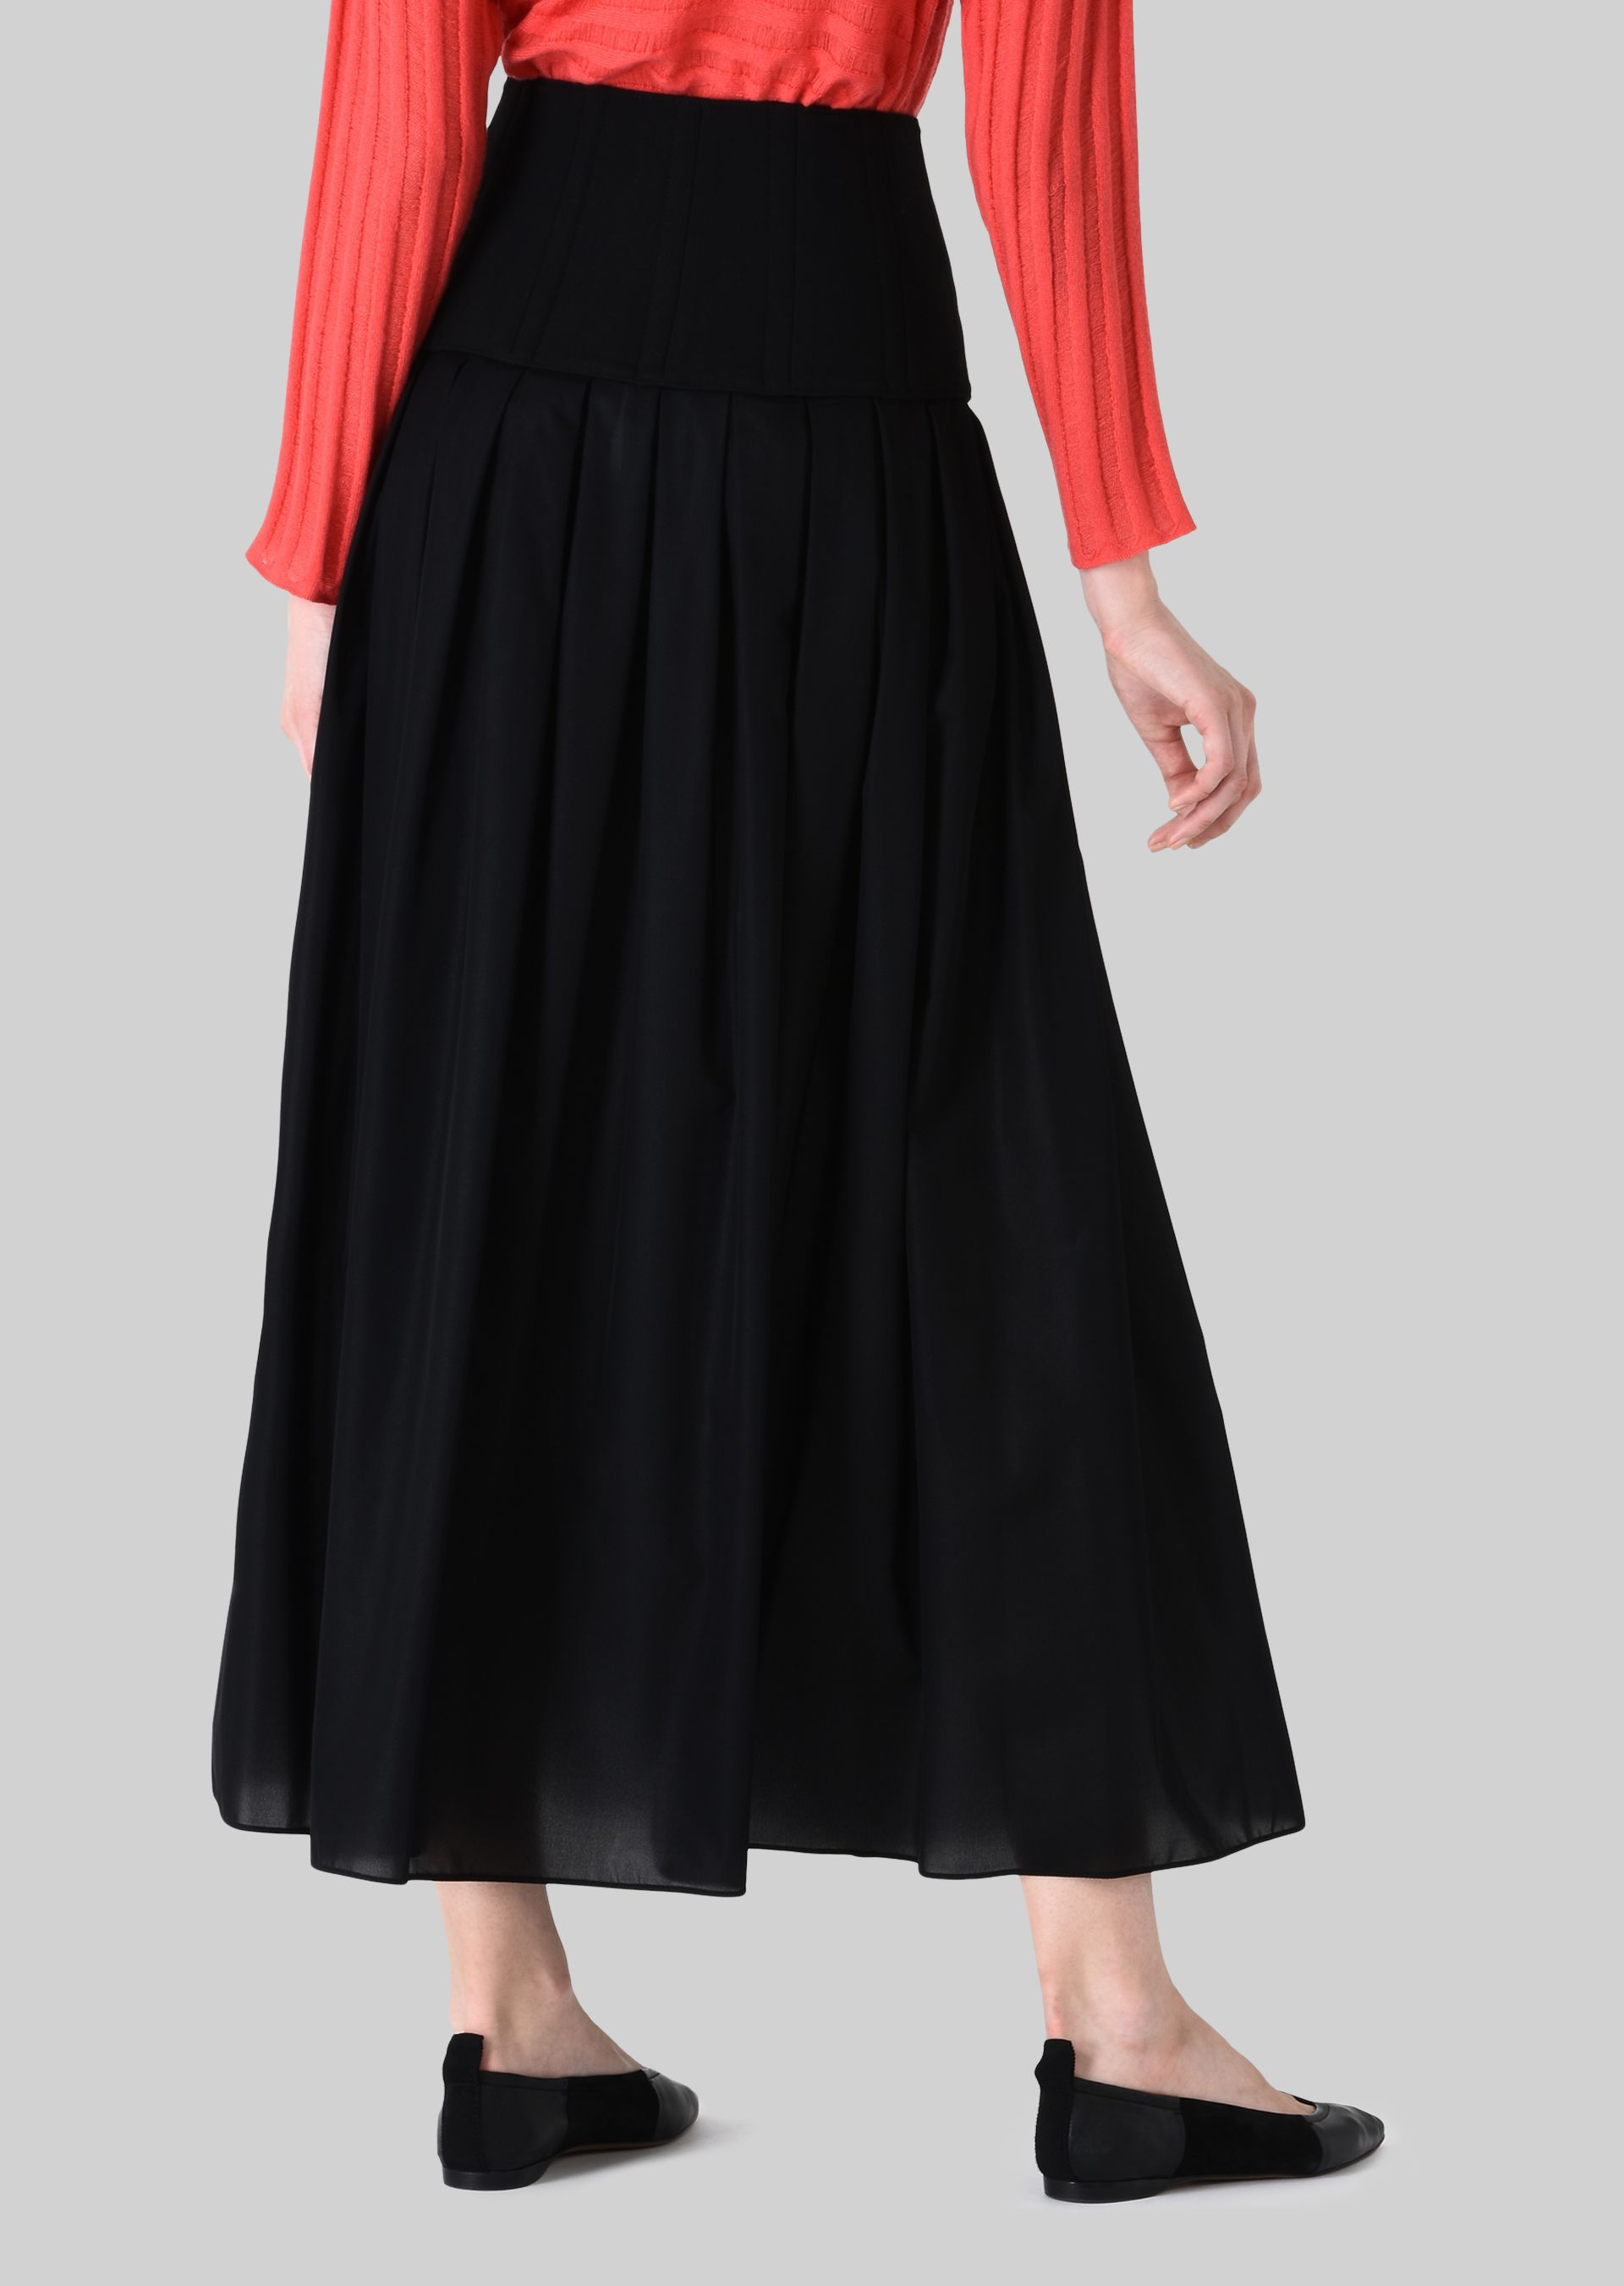 GIORGIO ARMANI LONG SKIRT IN TECHNICAL CRÊPE DE CHINE. Skirt D e